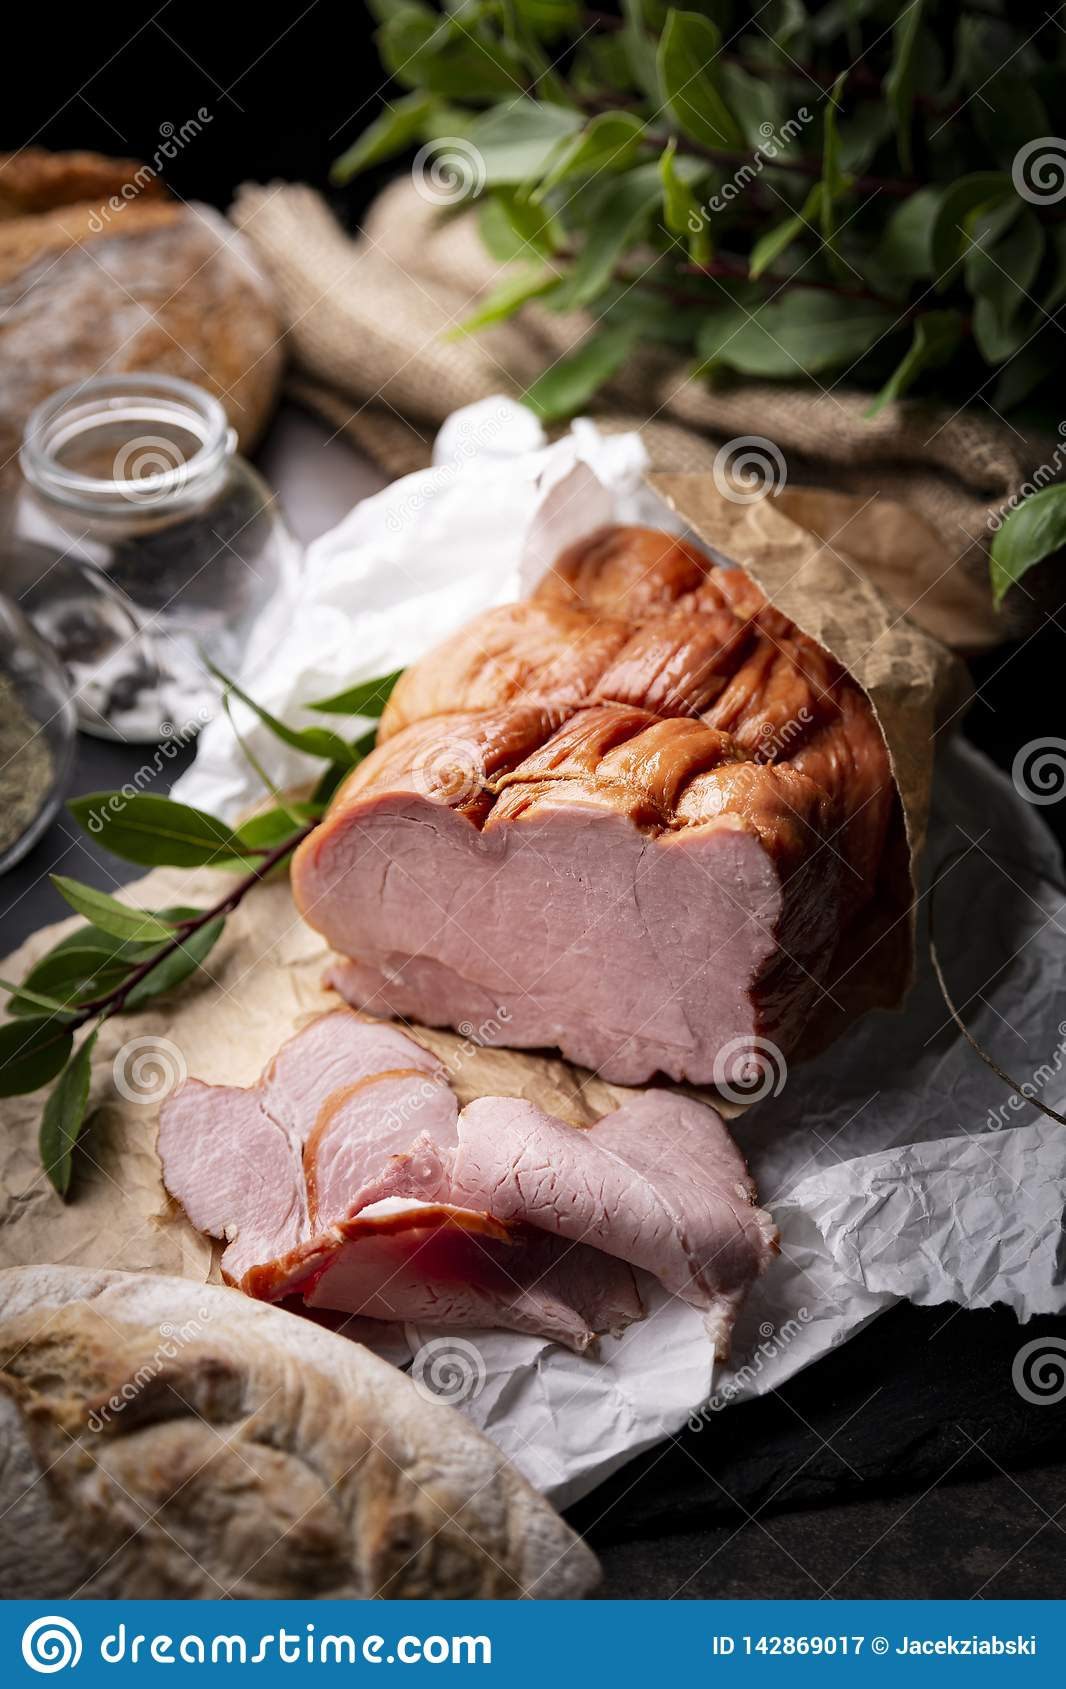 Smoked sirloin. Appetizing traditional pork ham. Traditional, homely smoked meat.